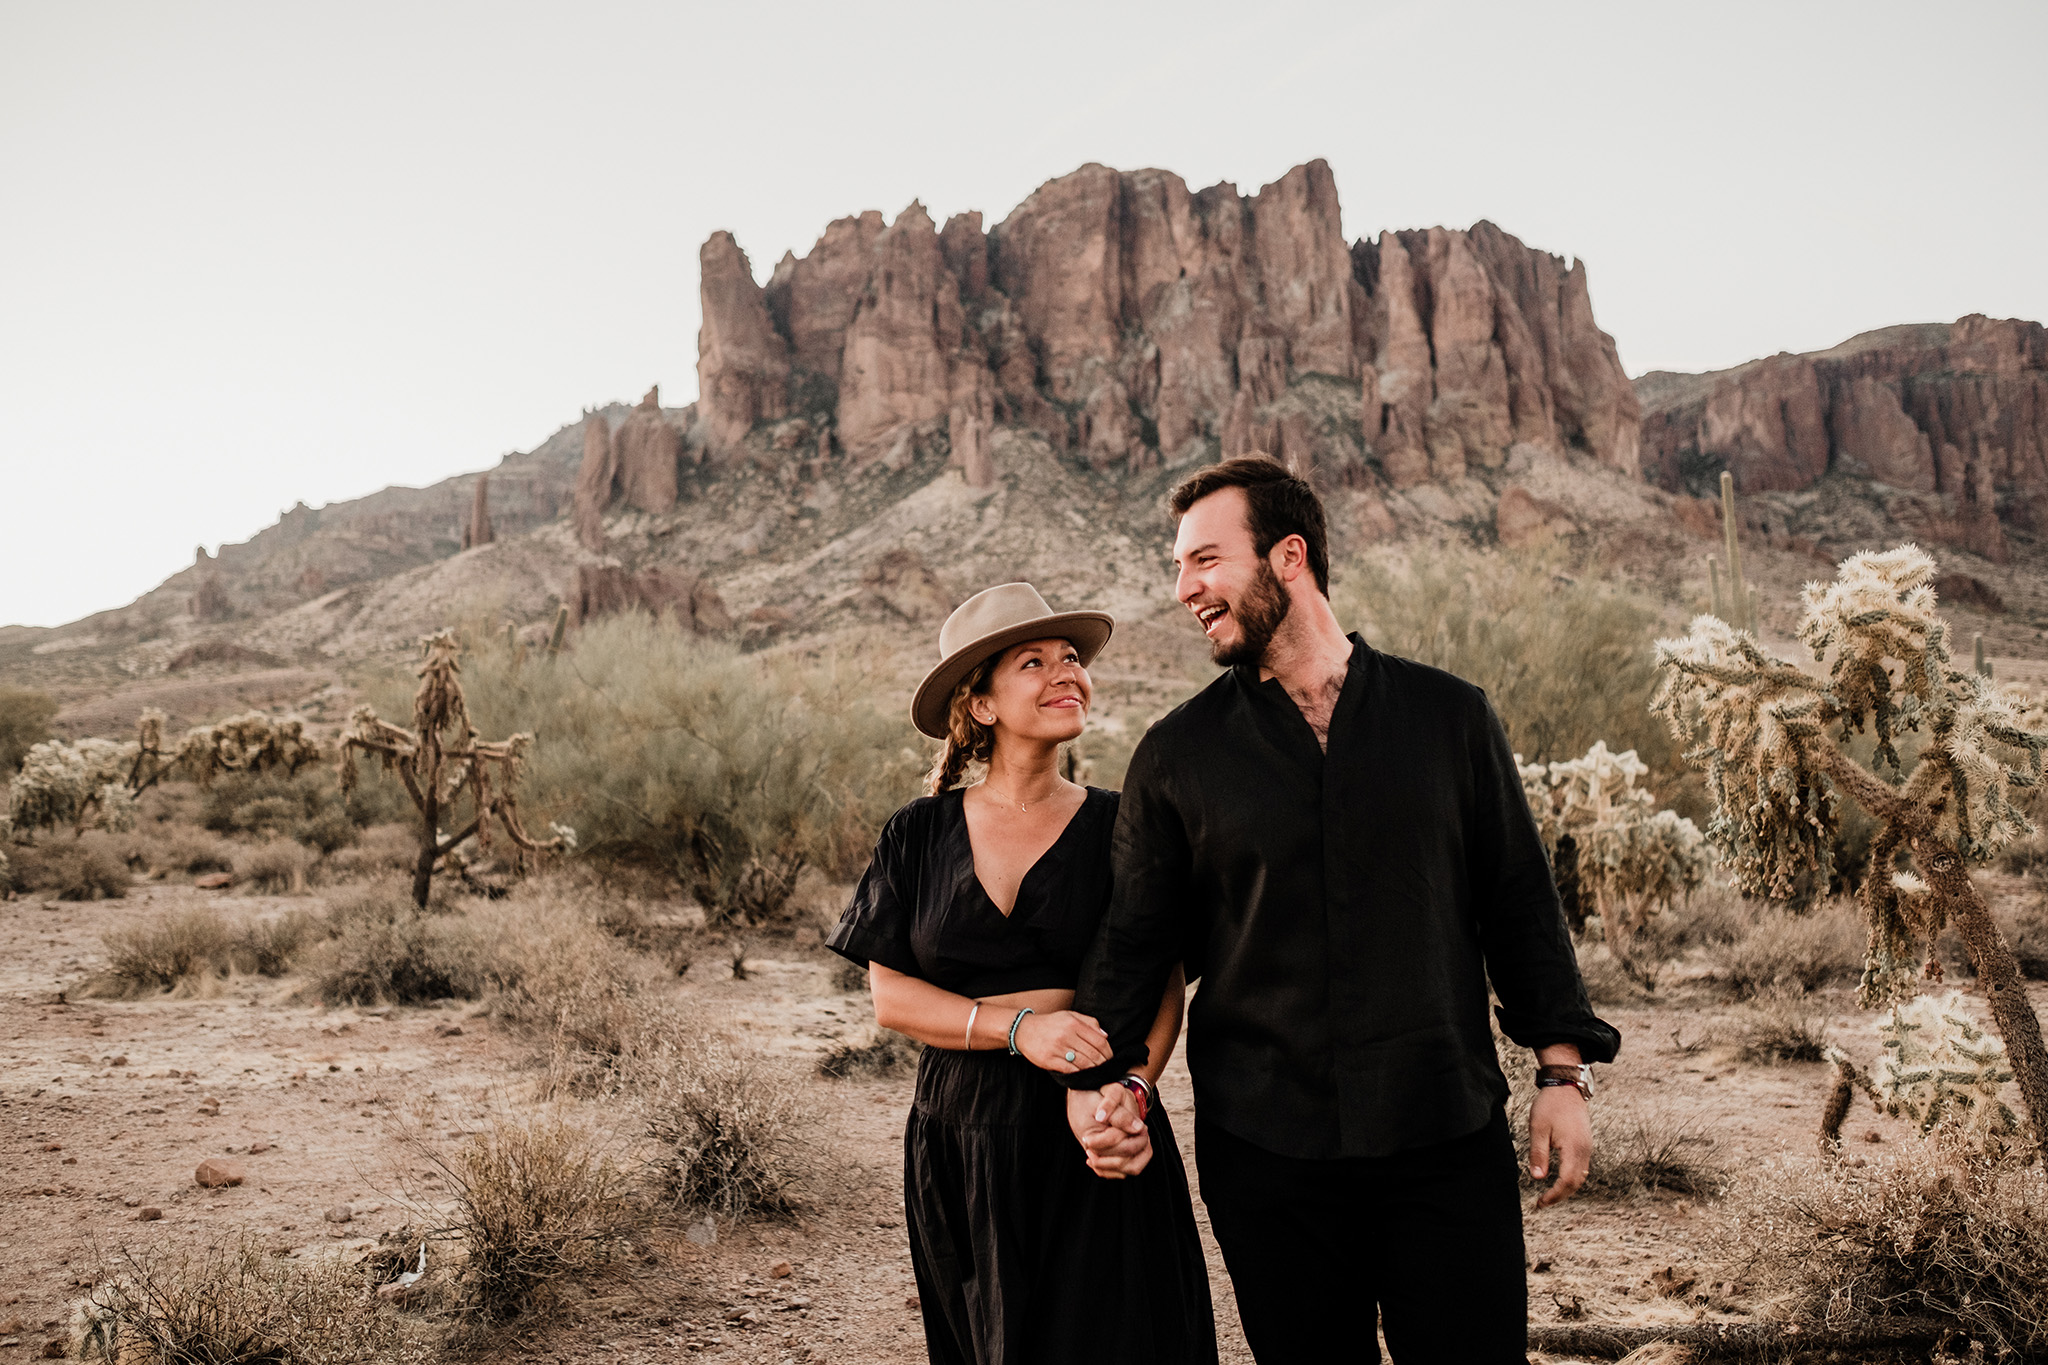 Arizona-Desert-Intimate-Wedding-Photographer-Lost-Dutchman-State-Park (4).jpg